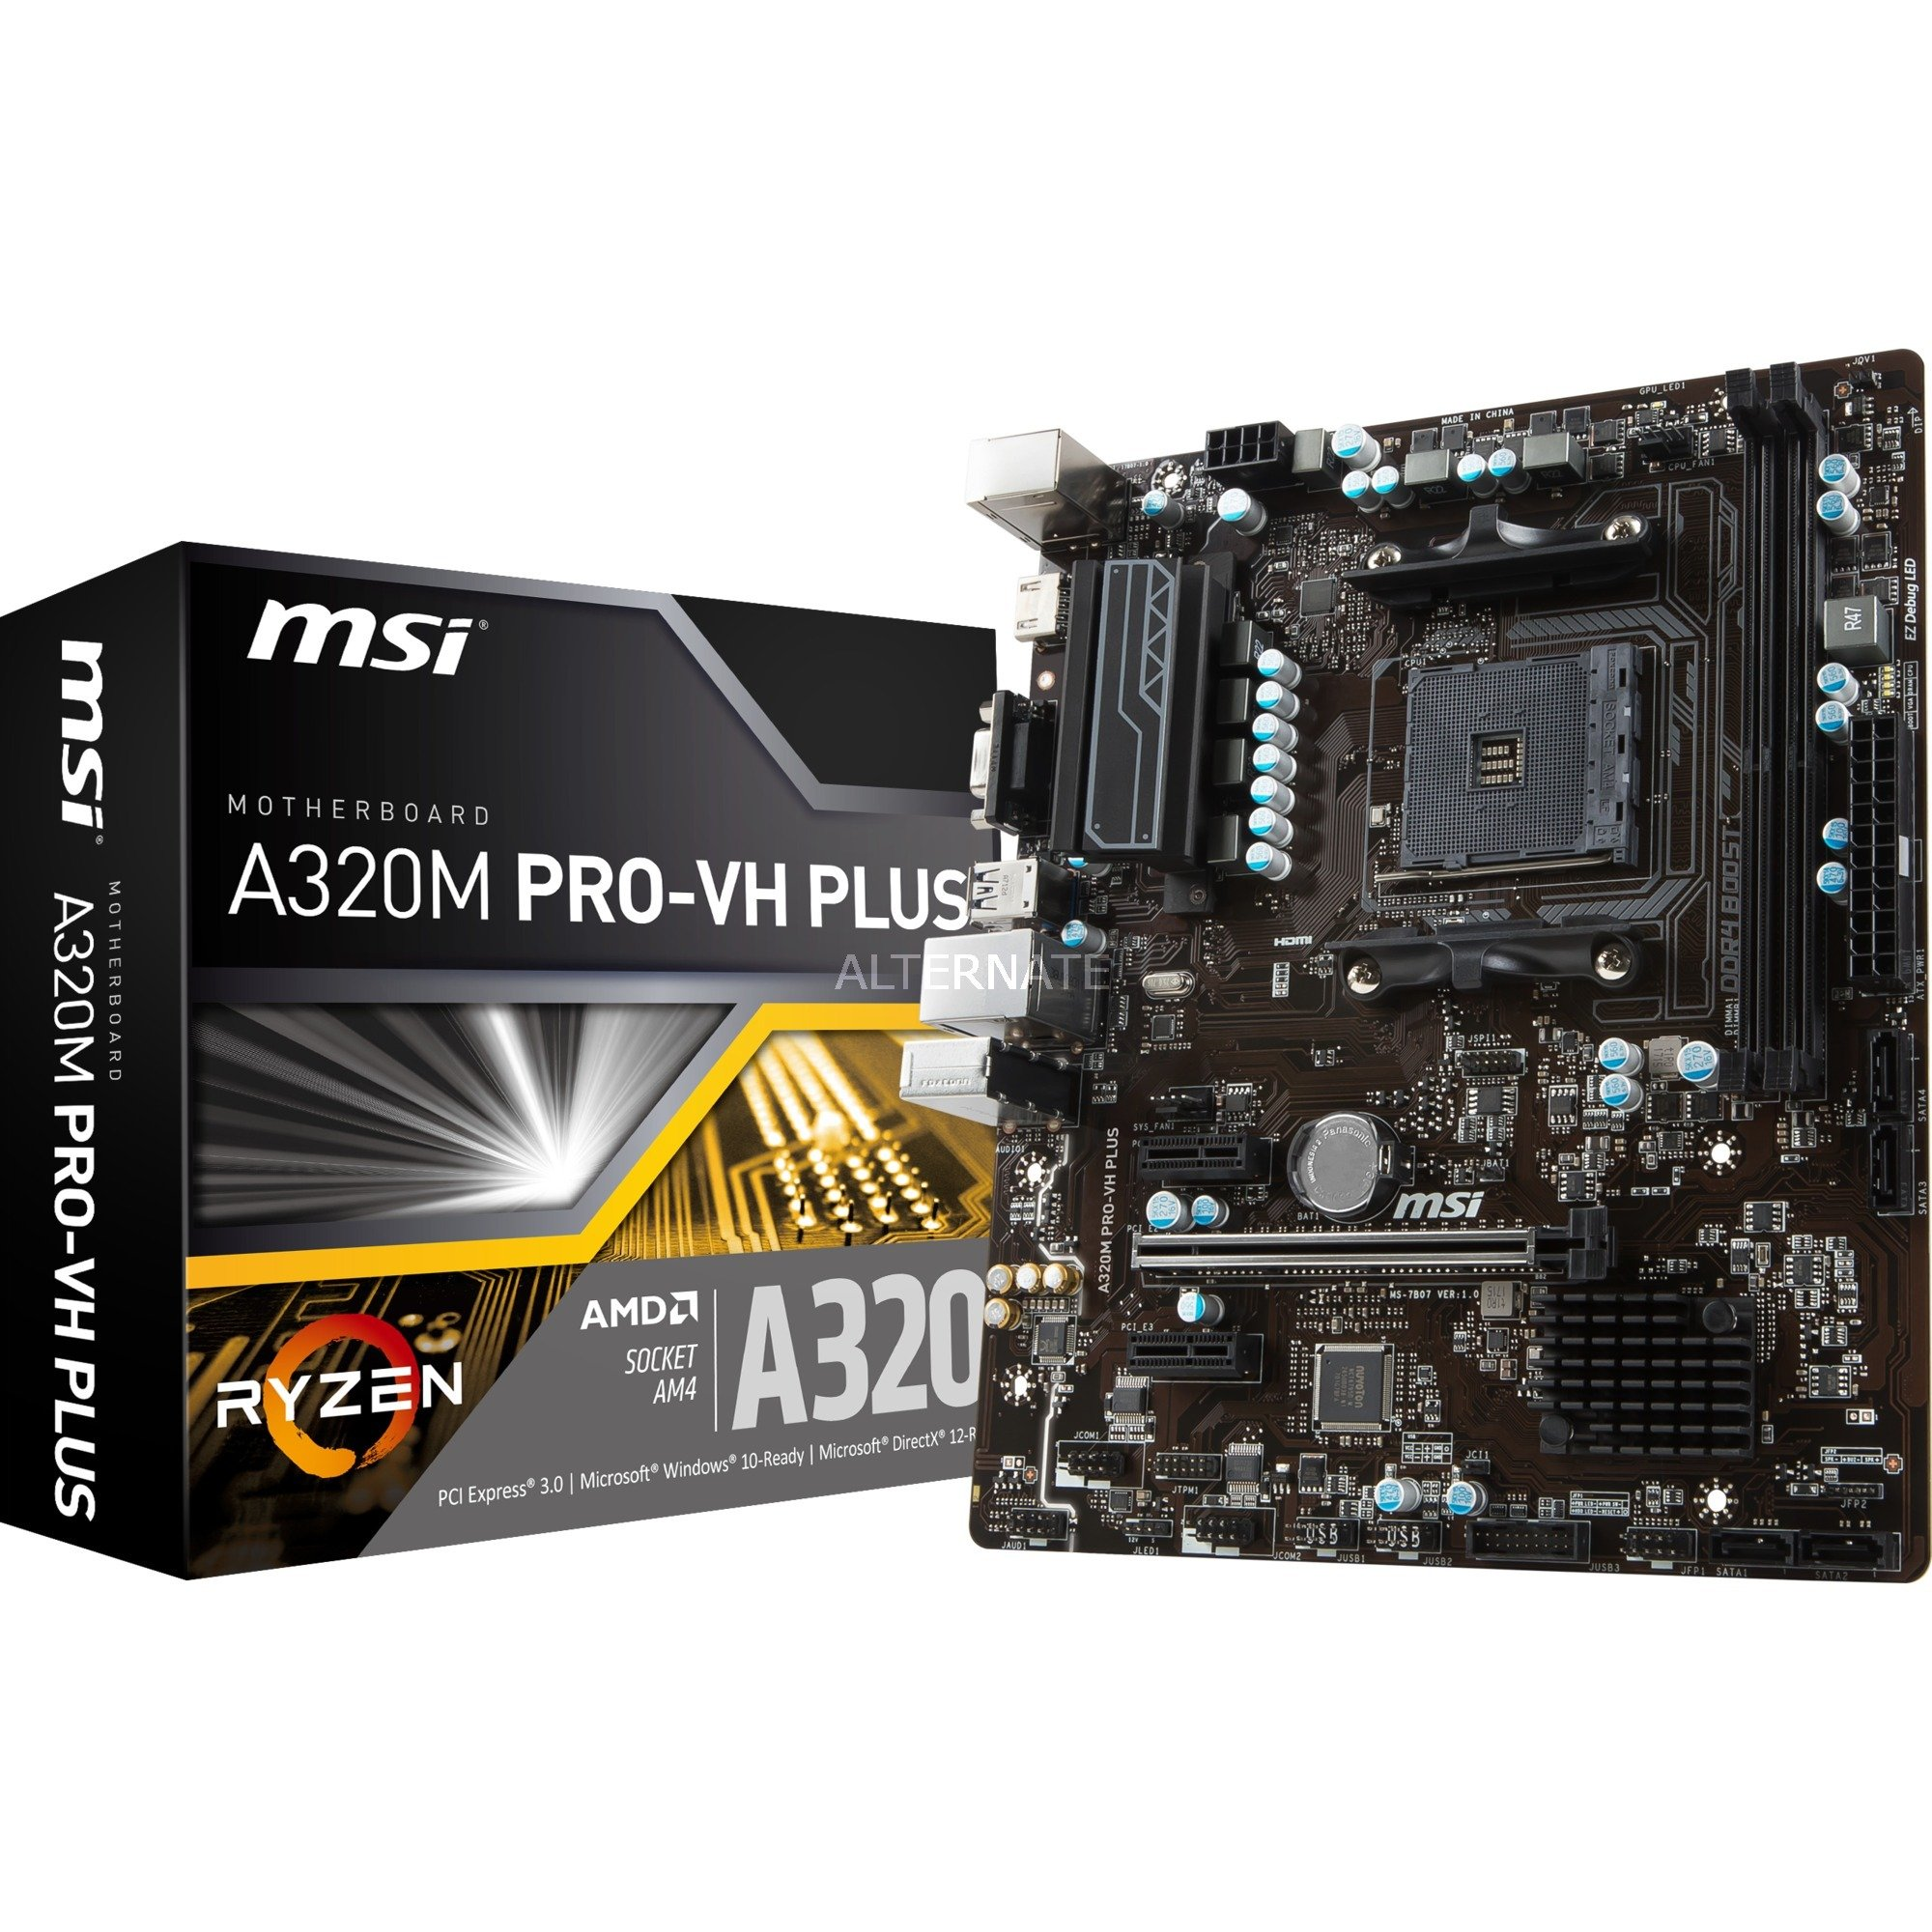 A320M PRO-VH PLUS Zócalo AM4 AMD A320 micro ATX, Placa base